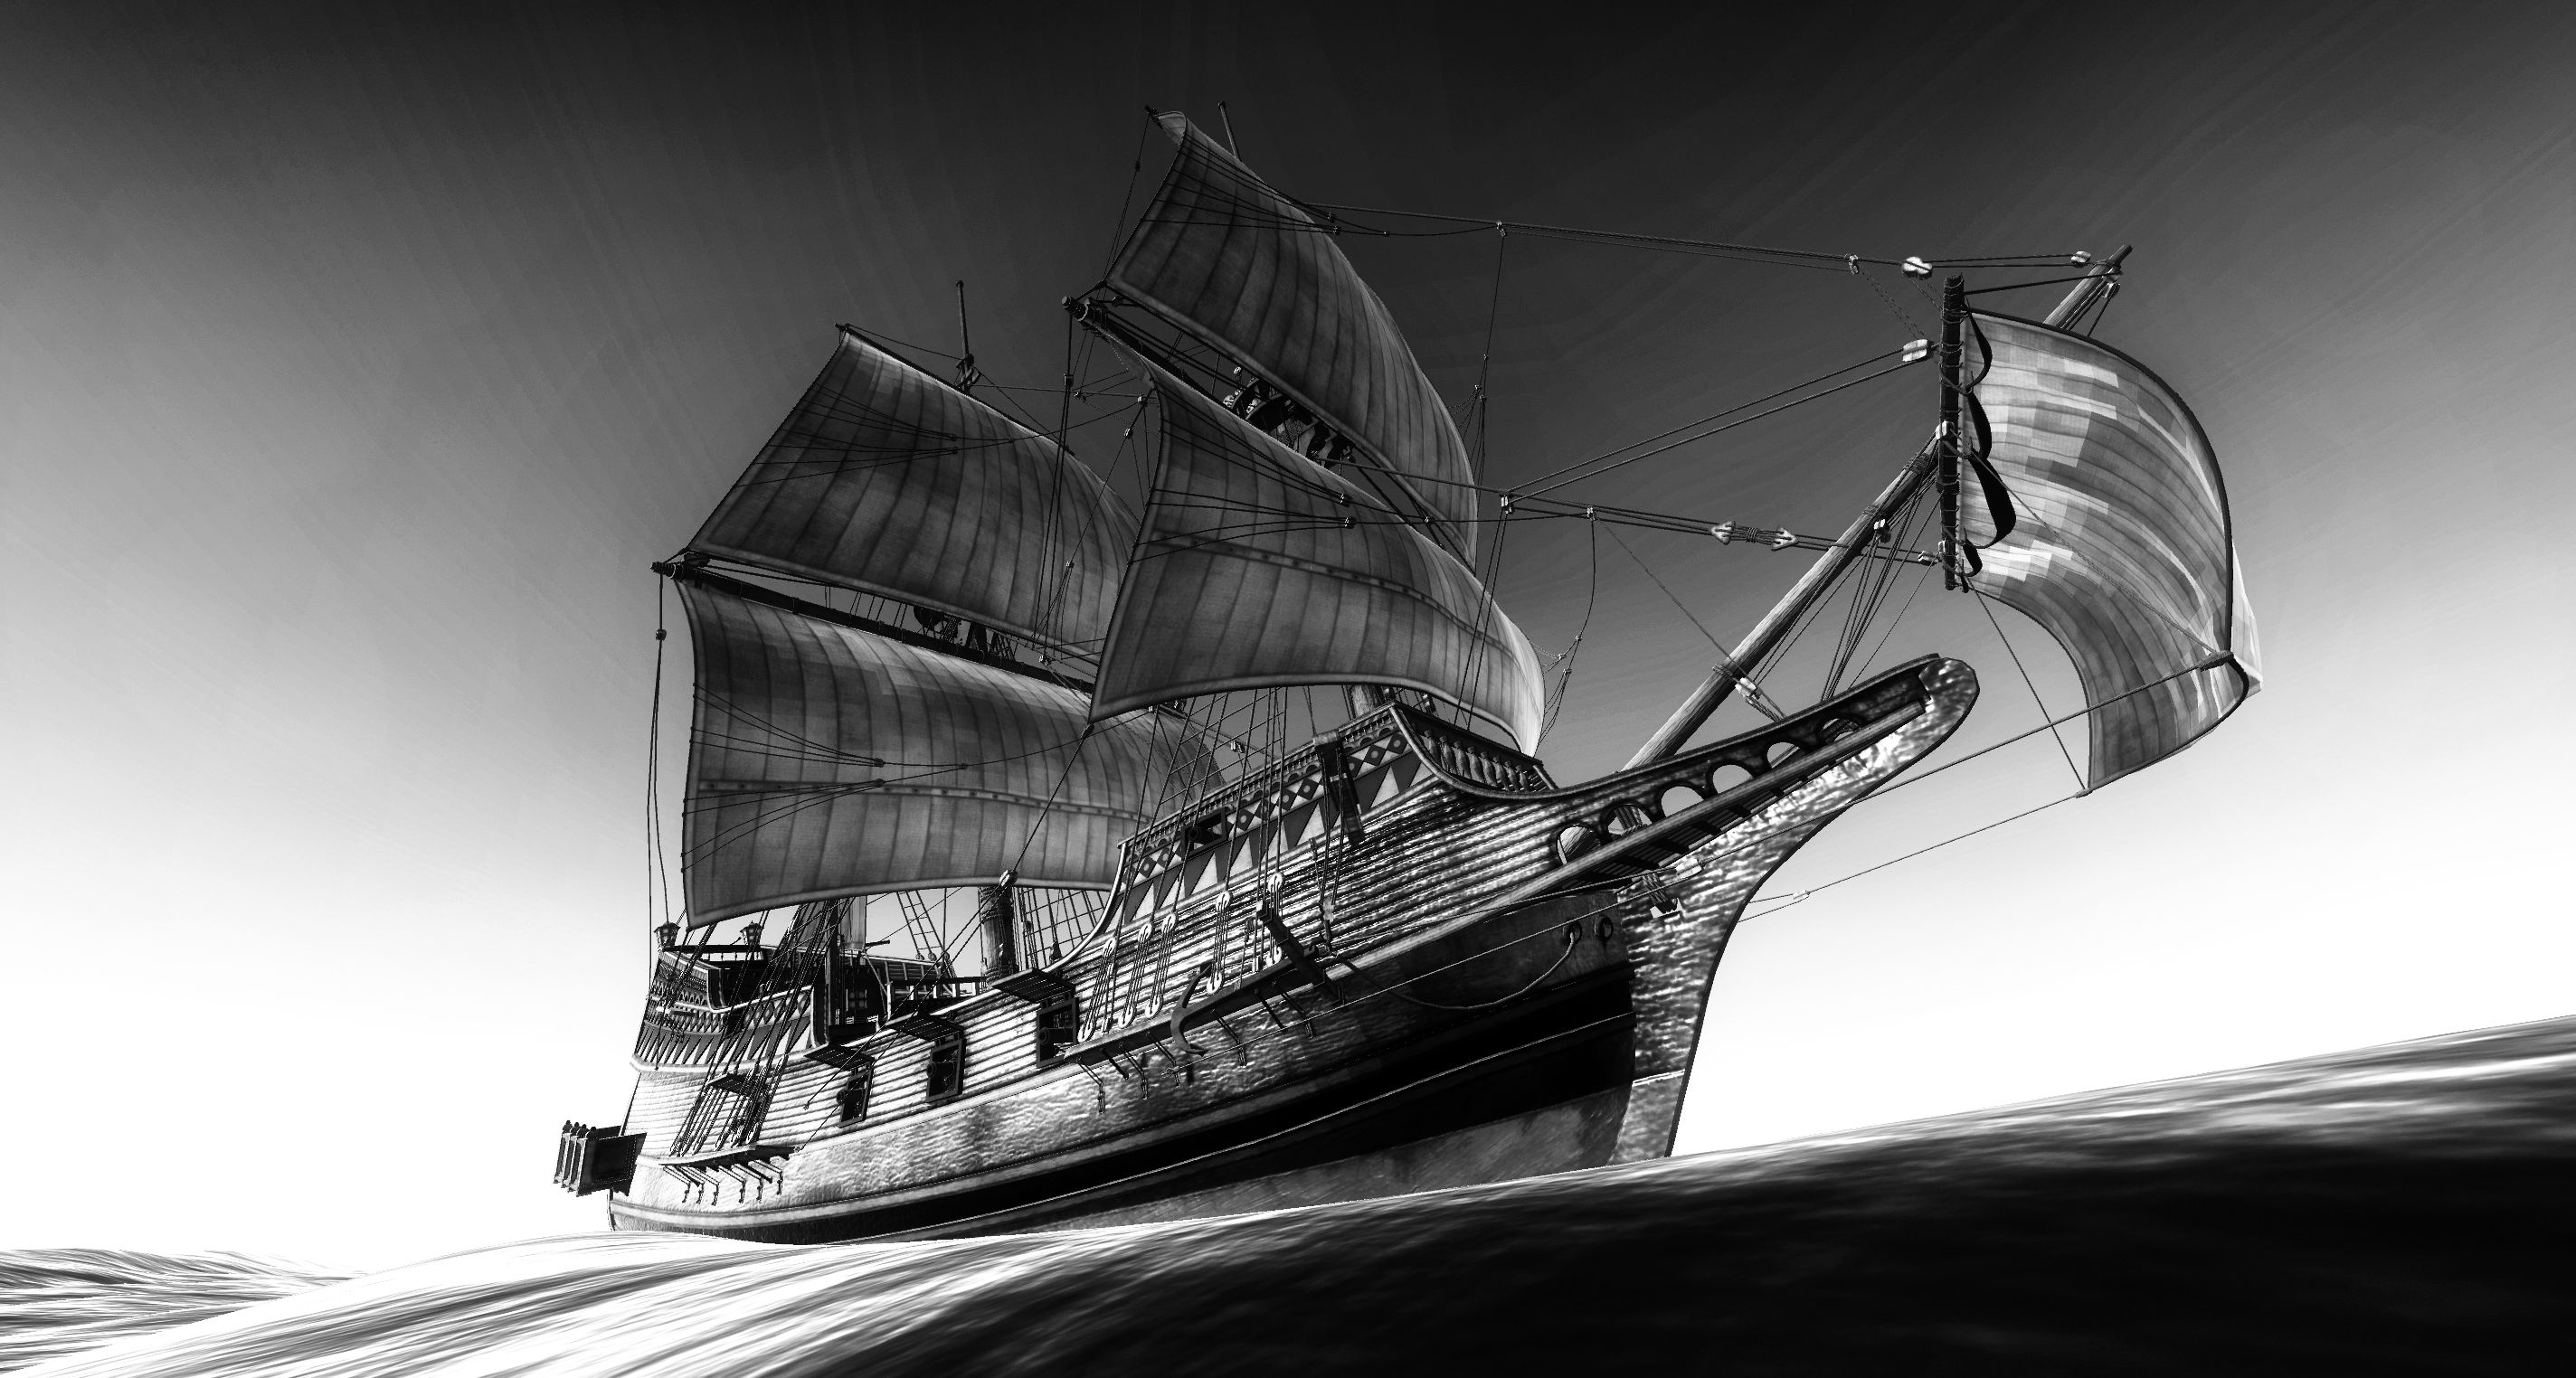 Realistic Pirate Ship